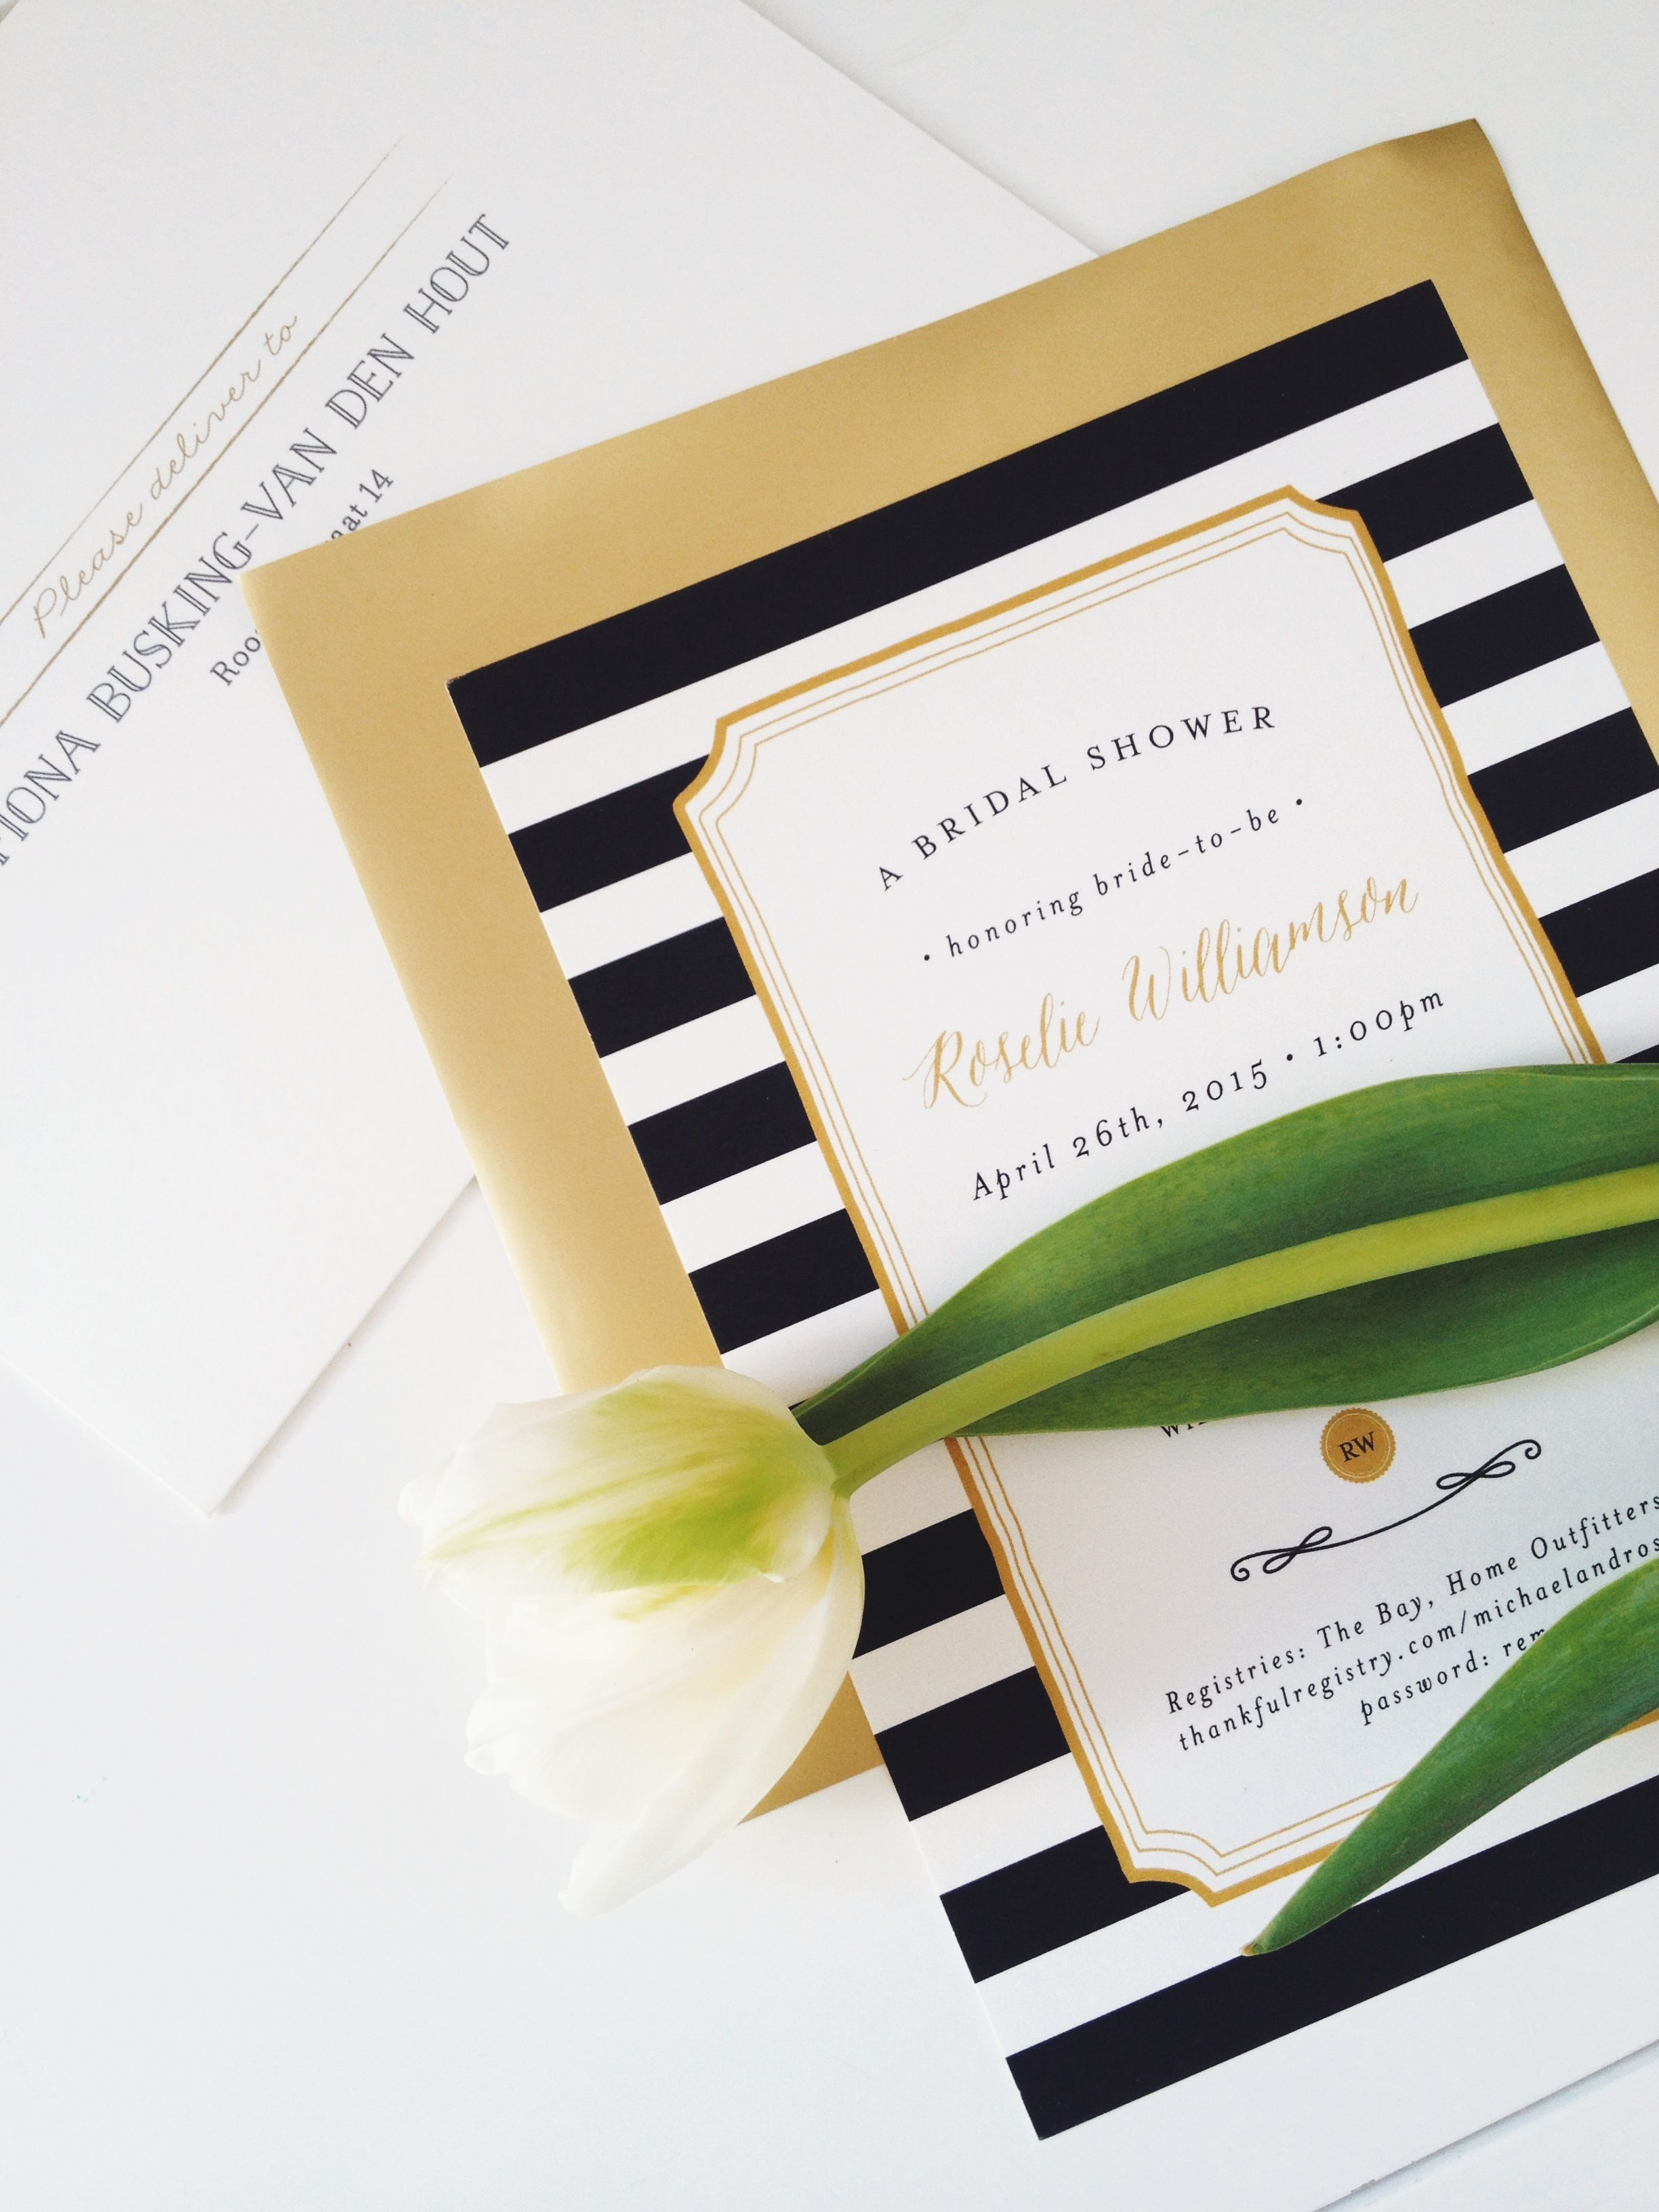 Kate Spade Inspired Bridal Shower Invitations Clic Black And White Stripes With Gold Accents Created At Minted